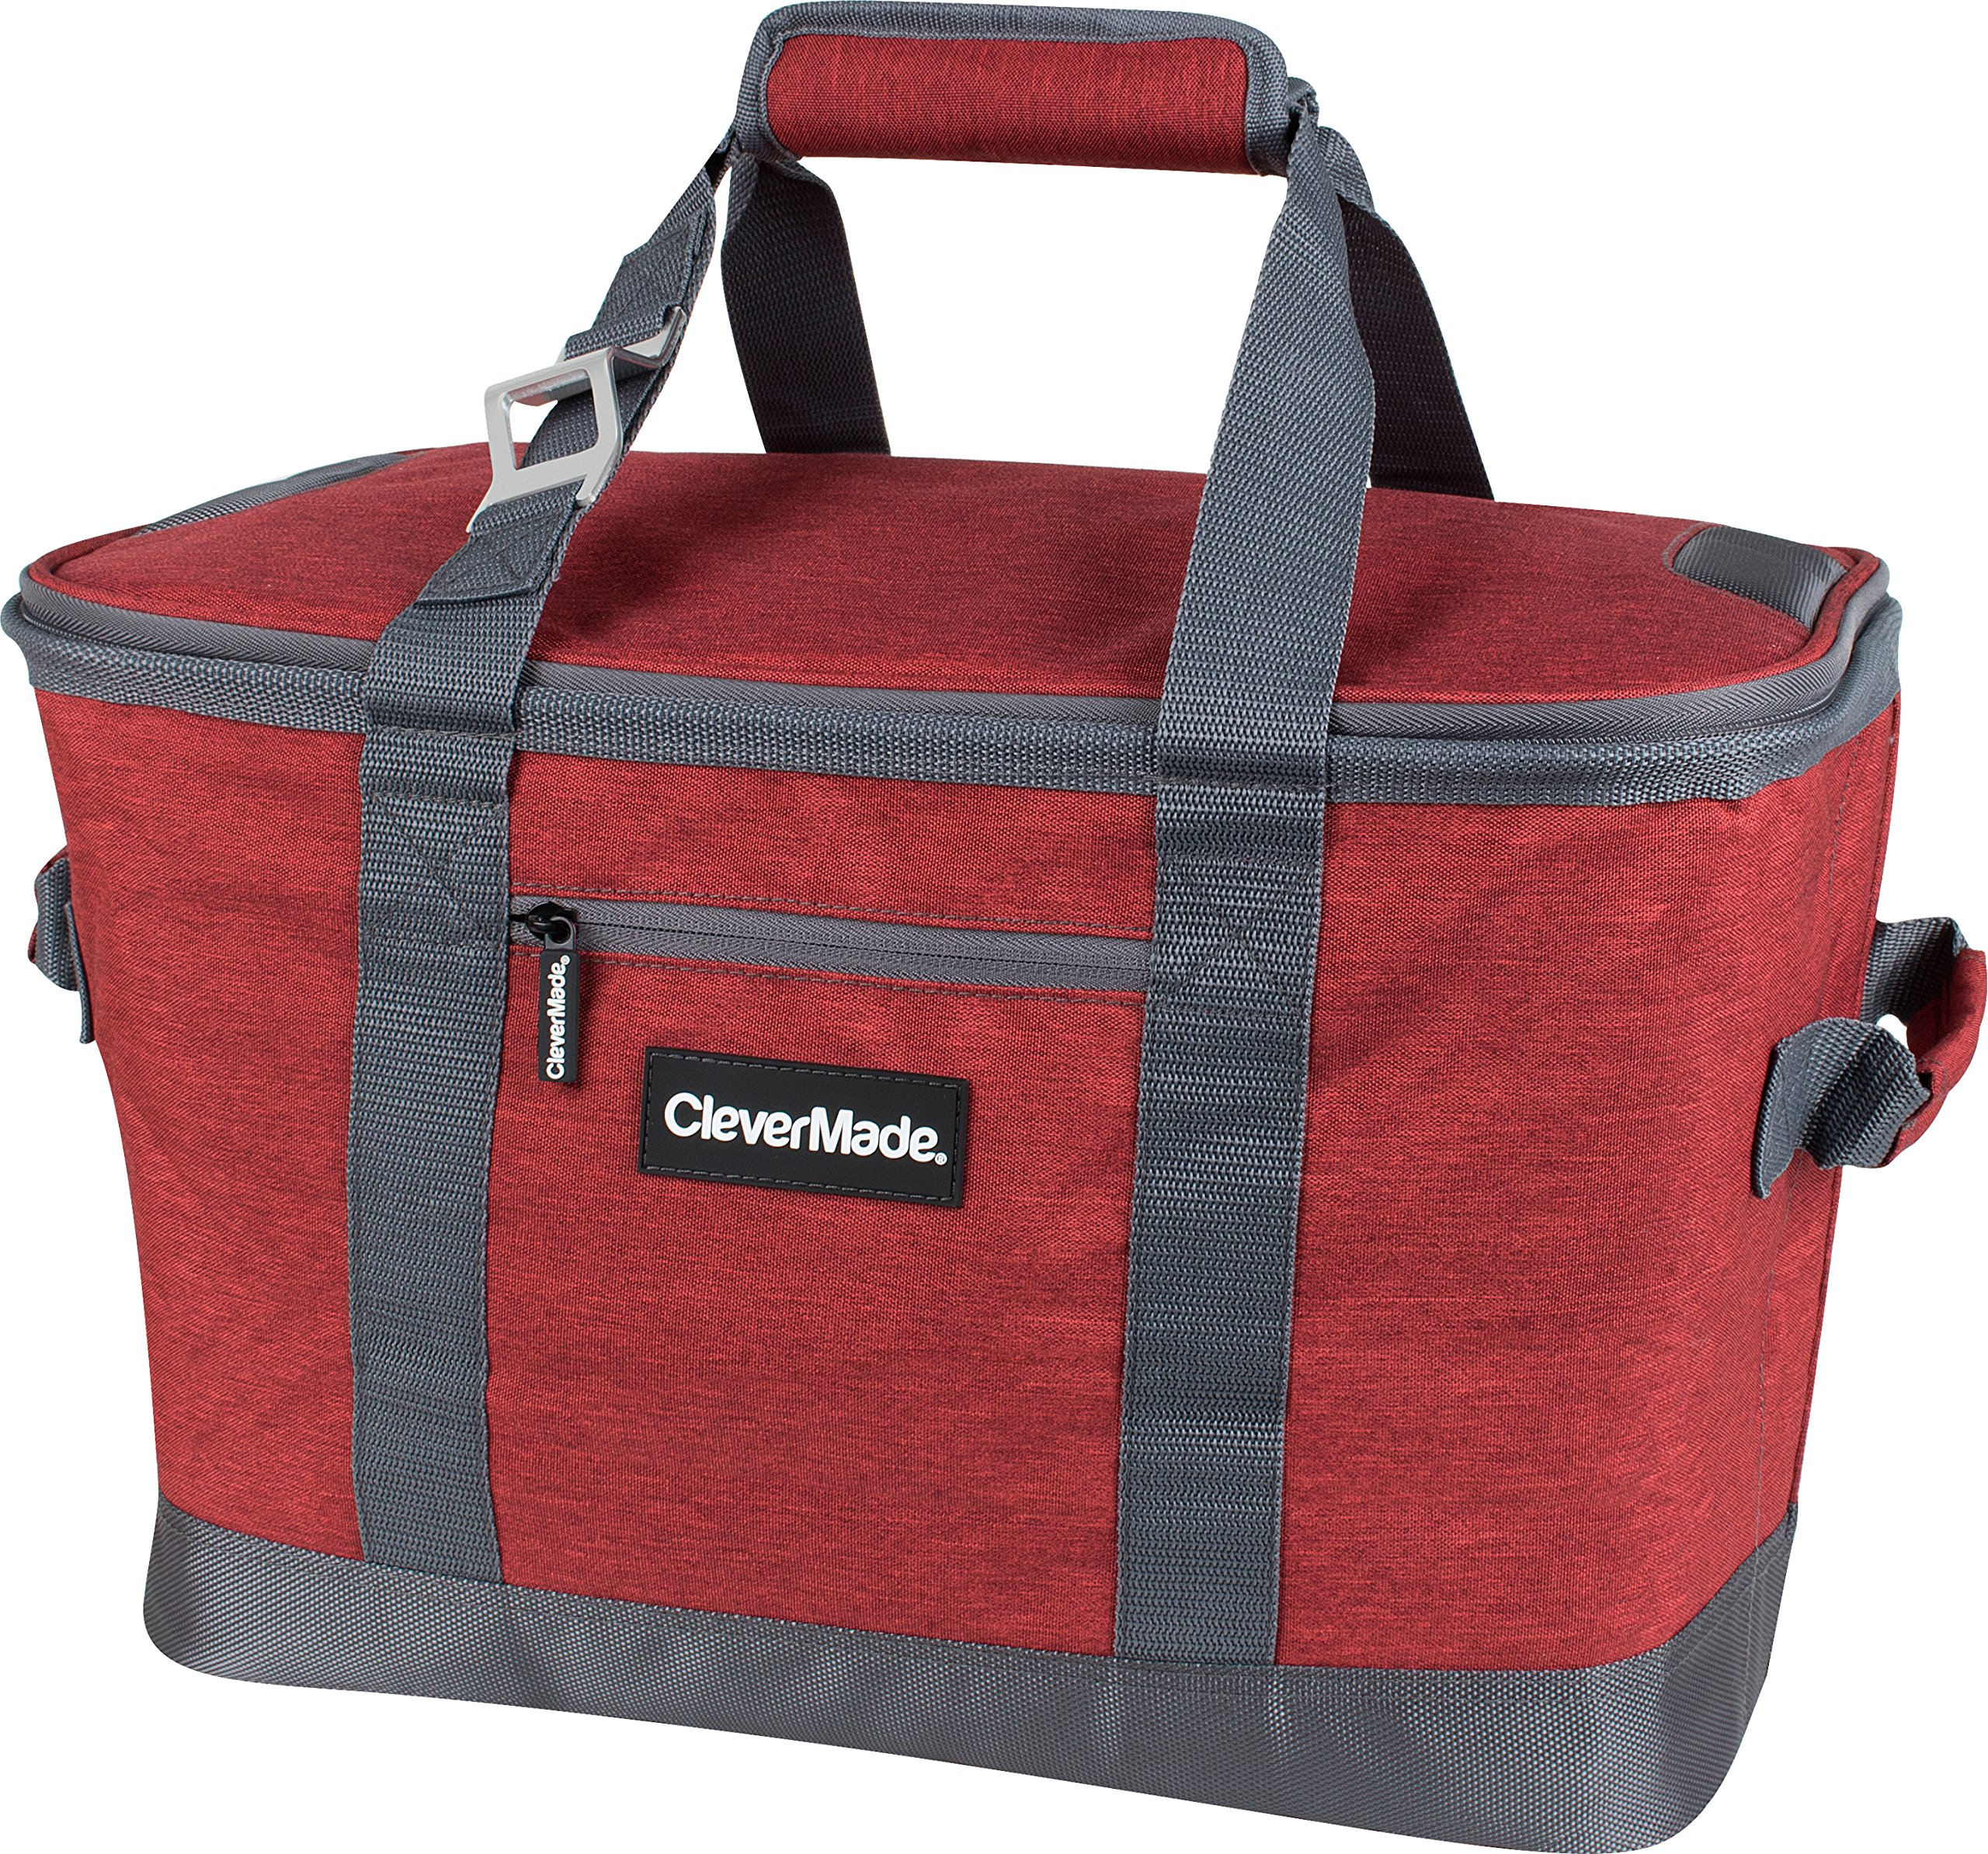 CleverMade Collapsible Cooler Bag: Insulated Leakproof 50 Can Soft Sided Portable Cooler Bag for Lunch, Grocery Shopping, Camping and Road Trips, Heathered Red/Charcoal by CleverMade